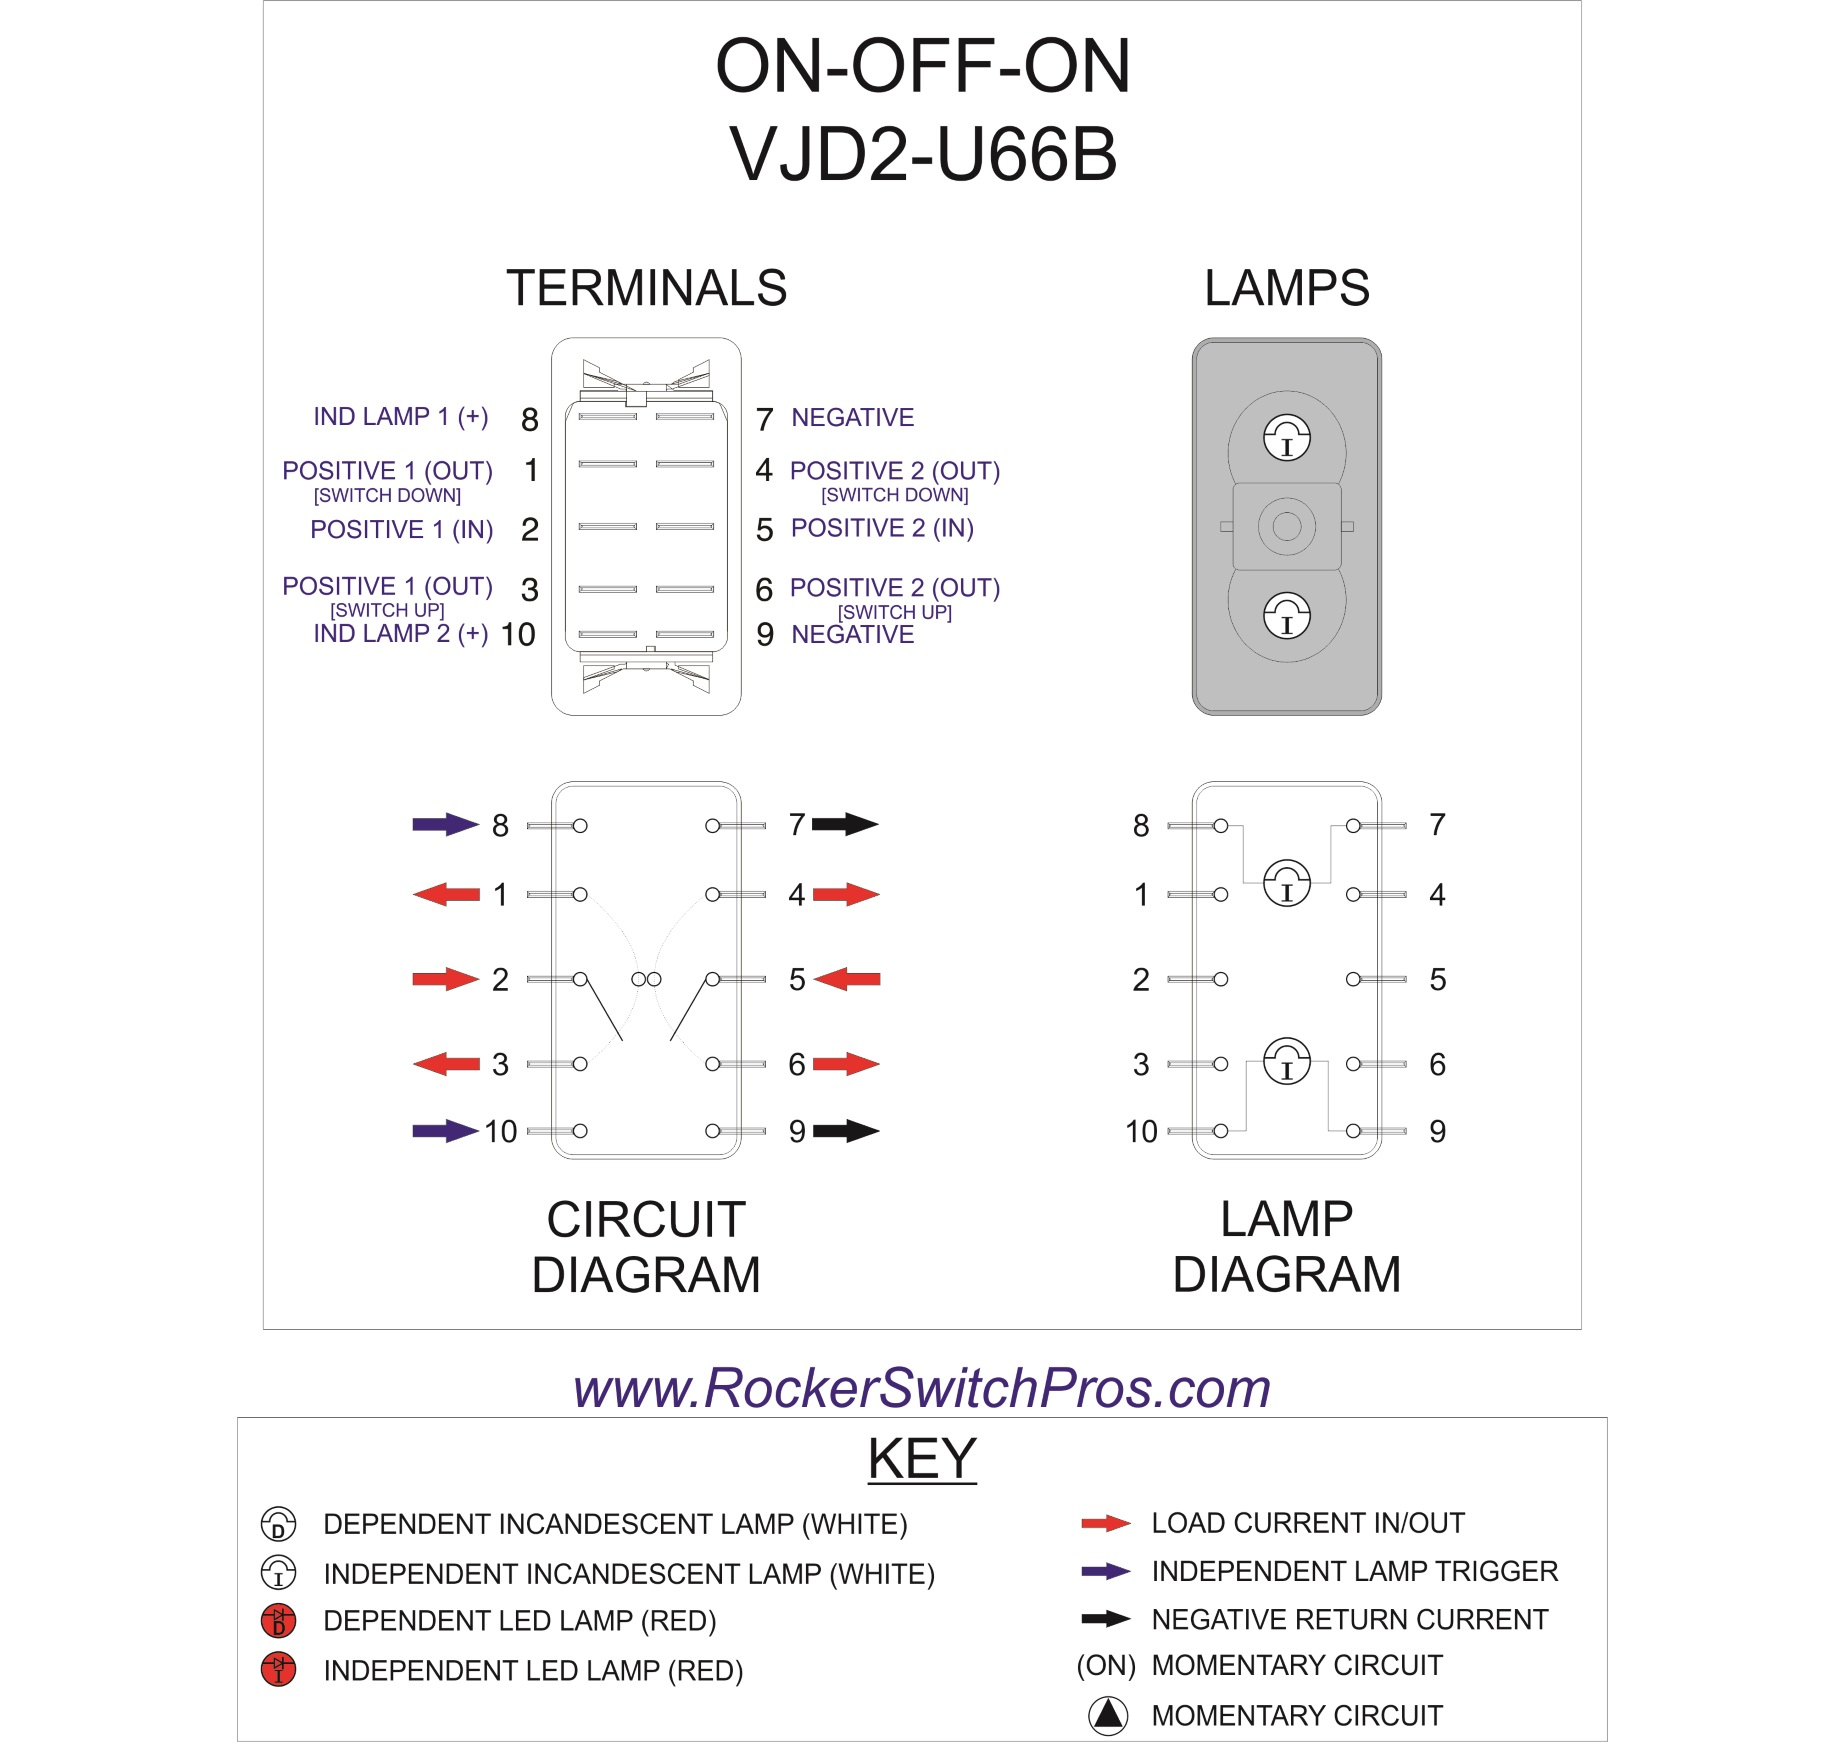 Dpdt Rocker Switch | On-Off-On | 2 Ind Lamps - Carling Switch Wiring Diagram